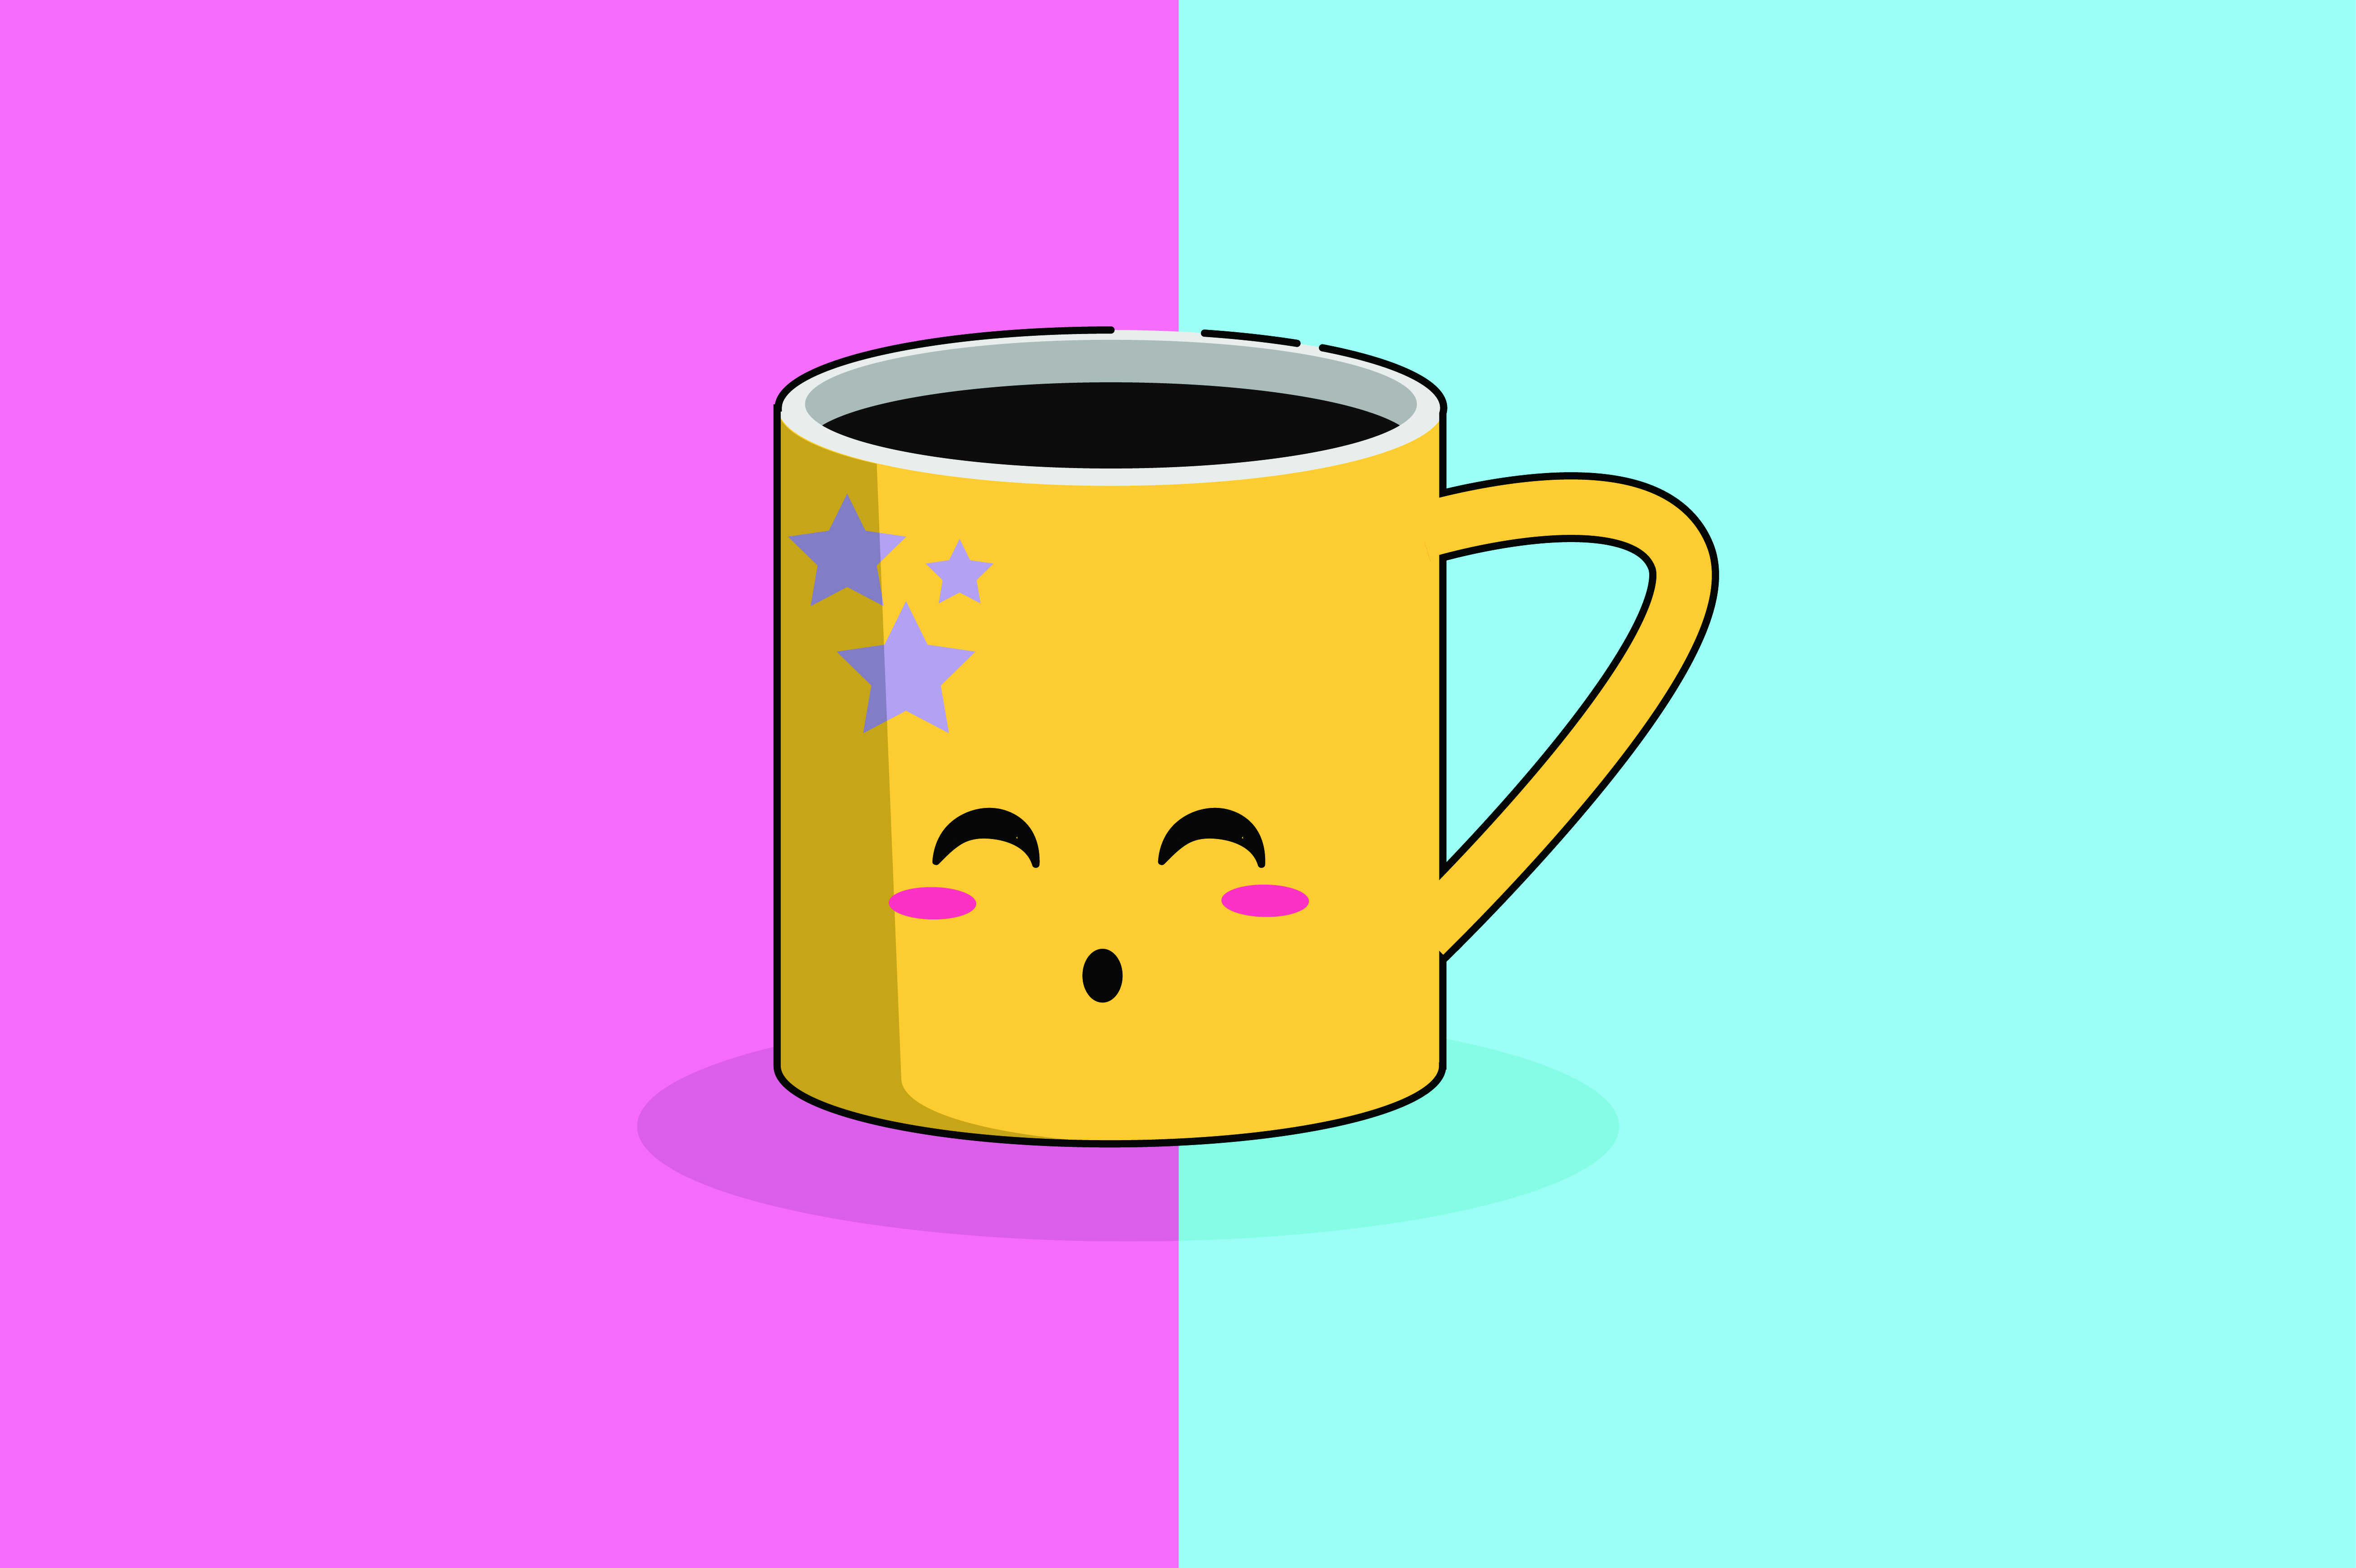 Download Free Coffee Mug Kawaii Cute Illustration Graphic By Purplebubble for Cricut Explore, Silhouette and other cutting machines.